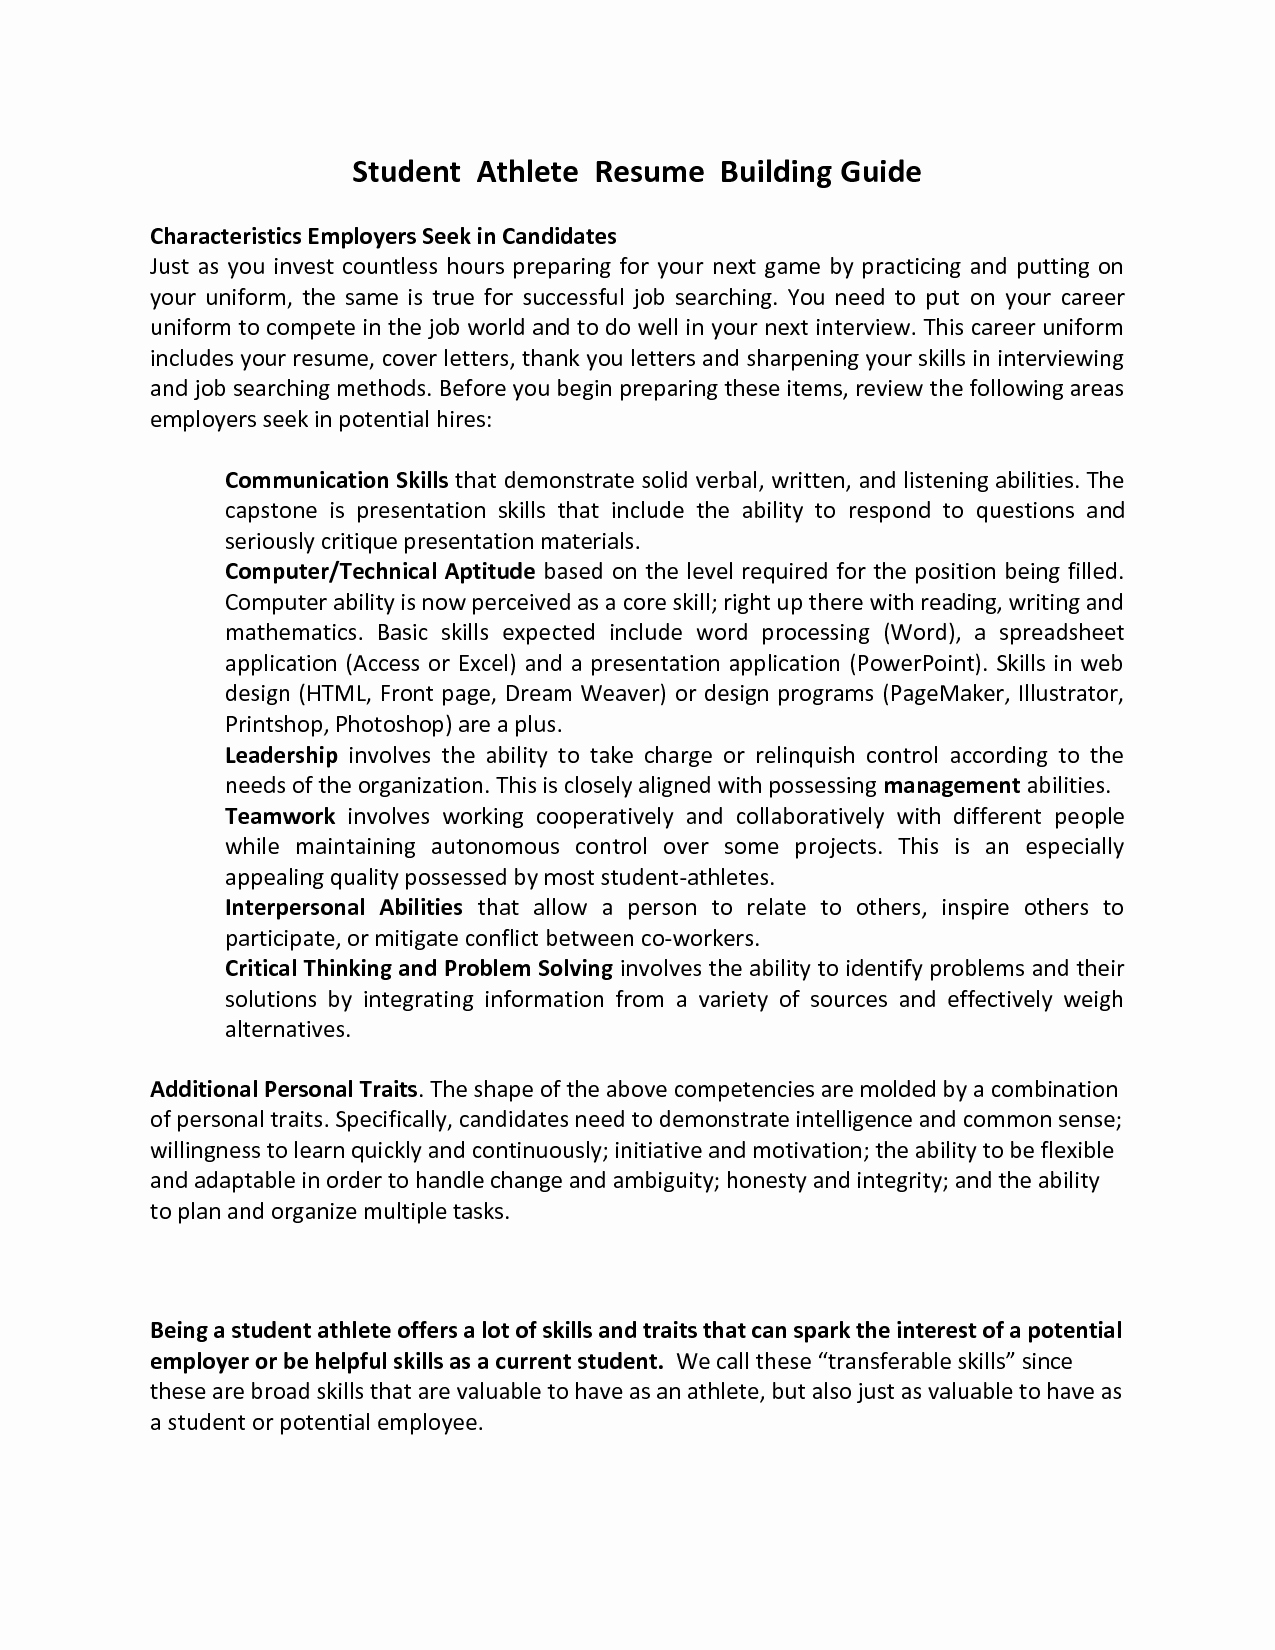 Best S Of athlete Resume Example Student athlete